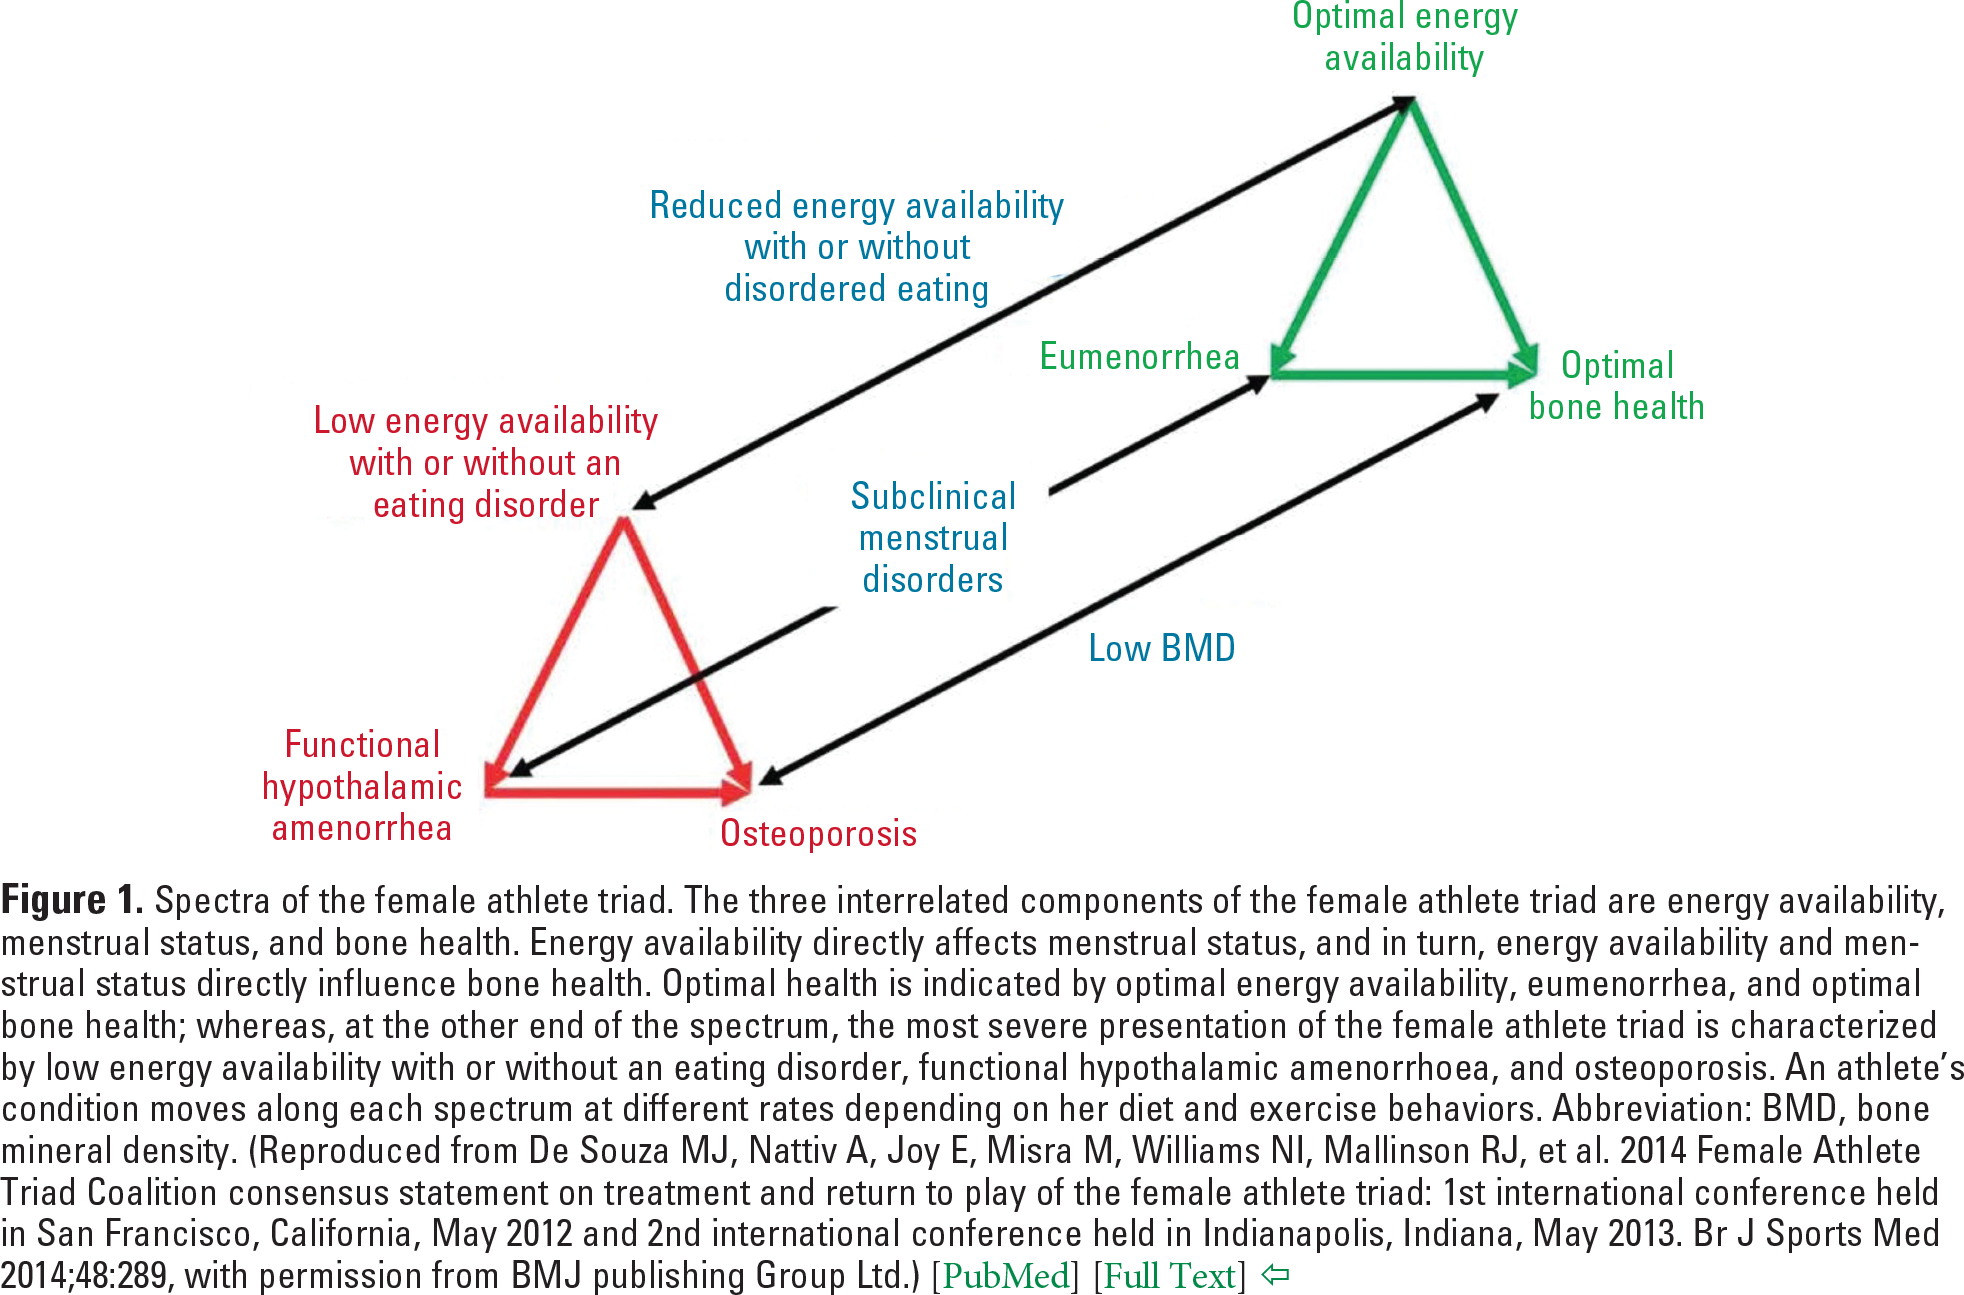 Figure 1. Spectra of the female athlete triad. The three interrelated components of the female athlete triad are energy availability, menstrual status, and bone health. Energy availability directly affects menstrual status, and in turn, energy availability and menstrual status directly influence bone health. Optimal health is indicated by optimal energy availability, eumenorrhea, and optimal bone health; whereas, at the other end of the spectrum, the most severe presentation of the female athlete triad is characterized by low energy availability with or without an eating disorder, functional hypothalamic amenorrhoea, and osteoporosis. An athlete's condition moves along each spectrum at different rates depending on her diet and exercise behaviors. Abbreviation: BMD, bone mineral density. (Reproduced from De Souza MJ, Nattiv A, Joy E, Misra M, Williams NI, Mallinson RJ, et al. 2014 Female Athlete Triad Coalition consensus statement on treatment and return to play of the female athlete triad: 1st international conference held in San Francisco, California, May 2012 and 2nd international conference held in Indianapolis, Indiana, May 2013. Br J Sports Med 2014;48:289, with permission from BMJ publishing Group Ltd.) [ PubMed ] [ Full Text ]